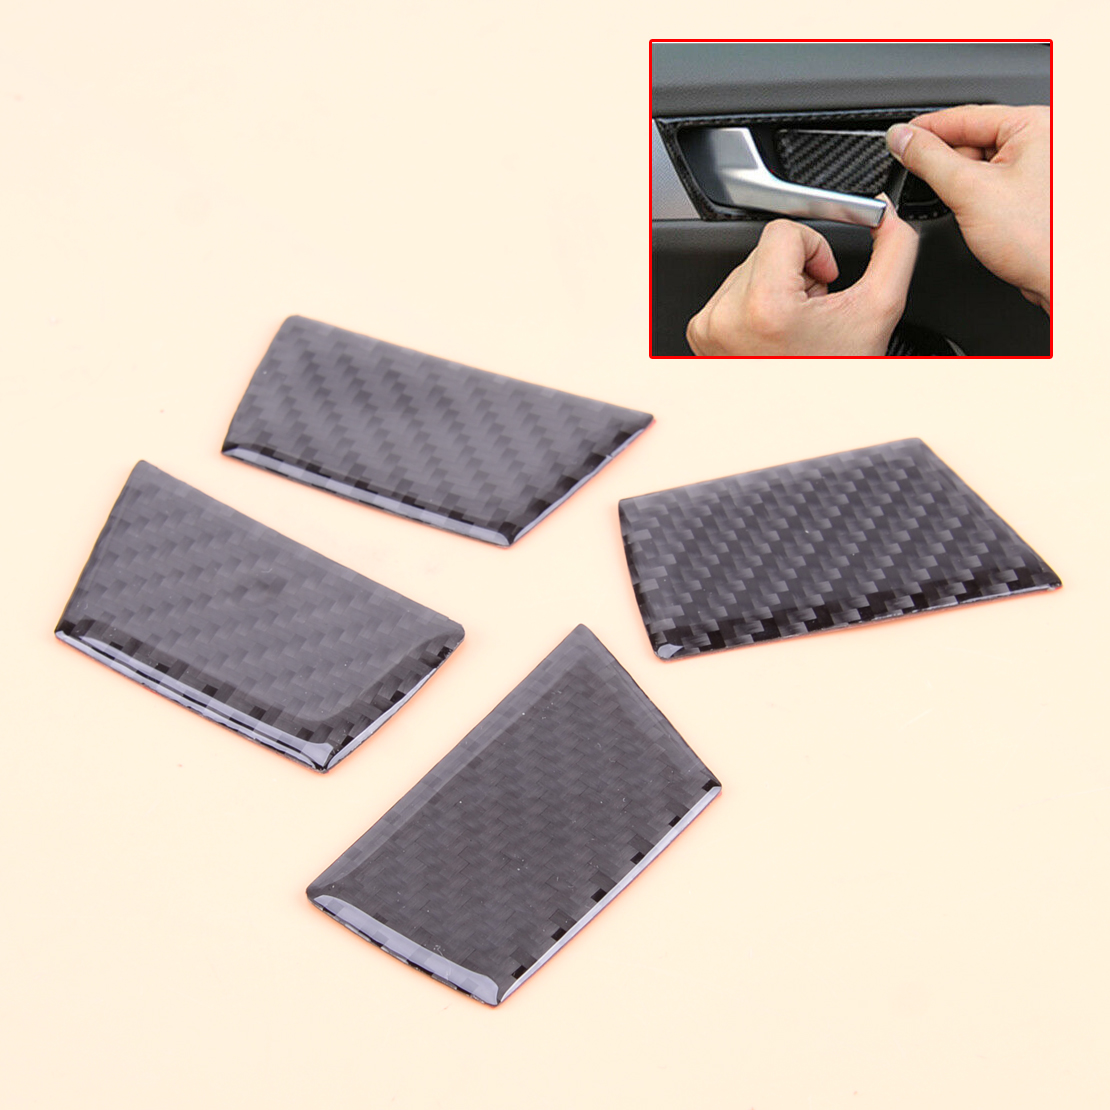 4Pcs Carbon Fiber Interior Auto Door Handle Bowl Cover Set Fit For Audi A4 B8 Q5 A5 2010 2011 2012 2013 2014 2015 image